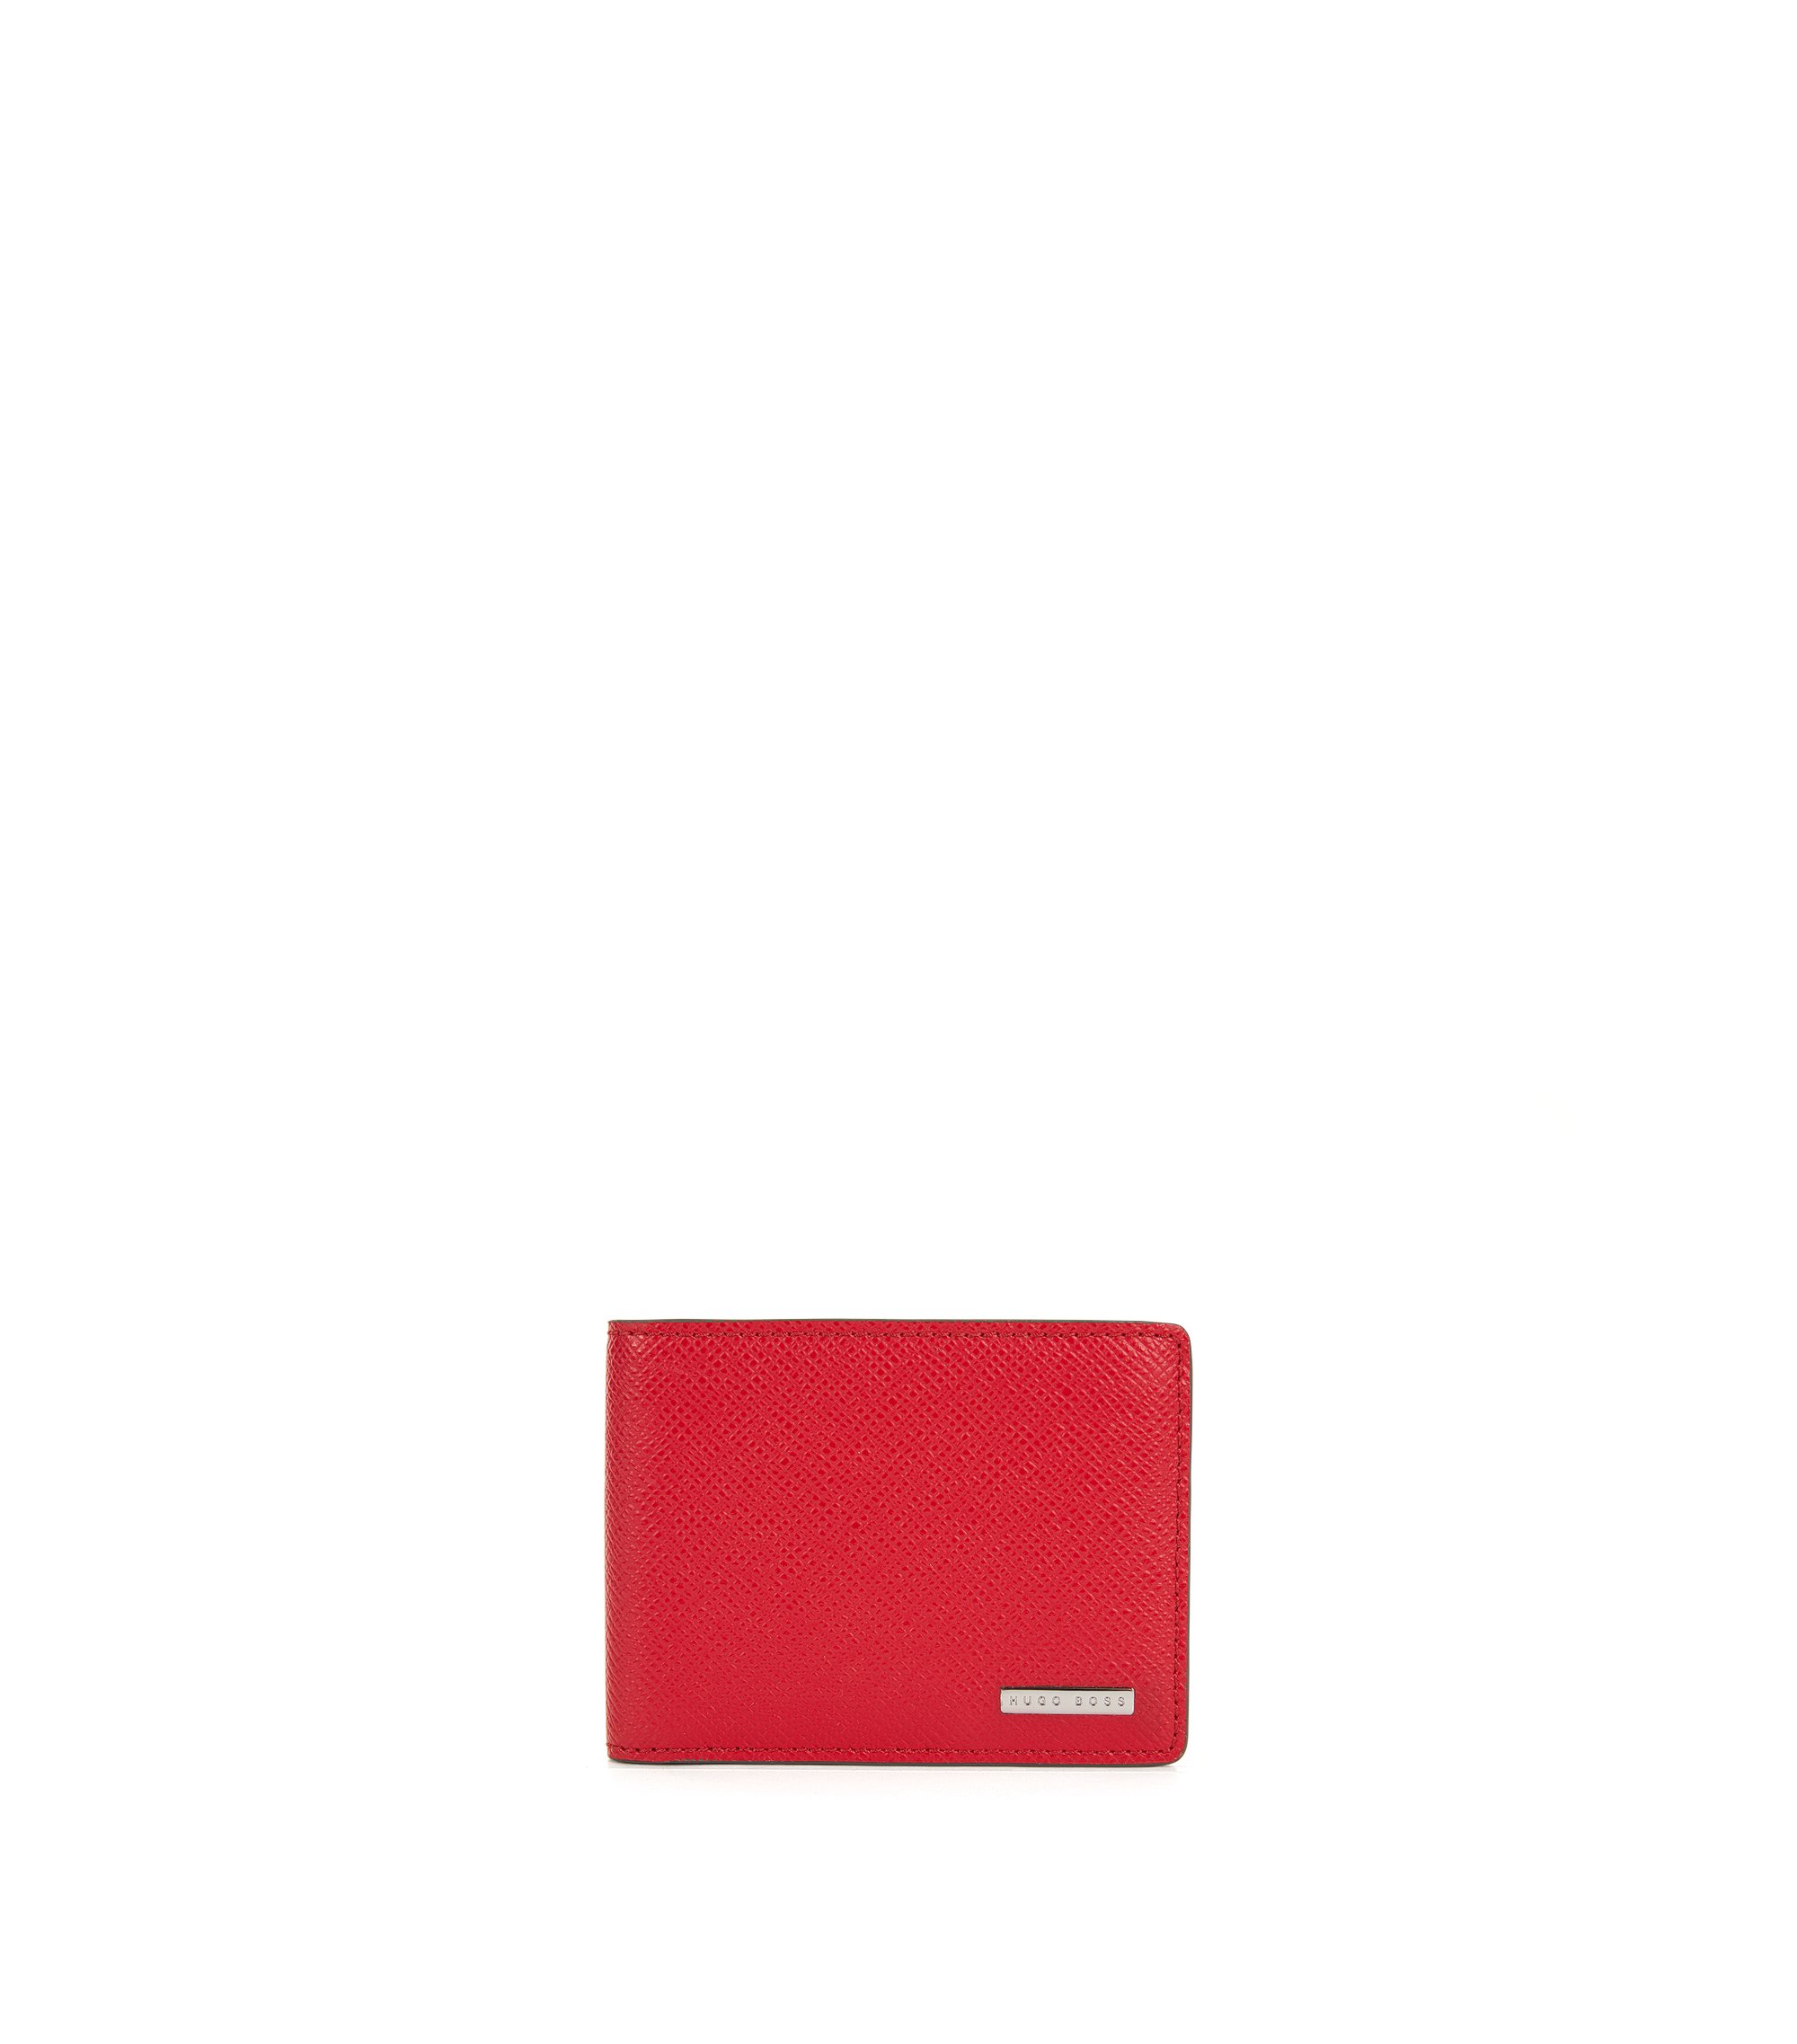 Calfskin Textured Wallet | Signature CC, Red